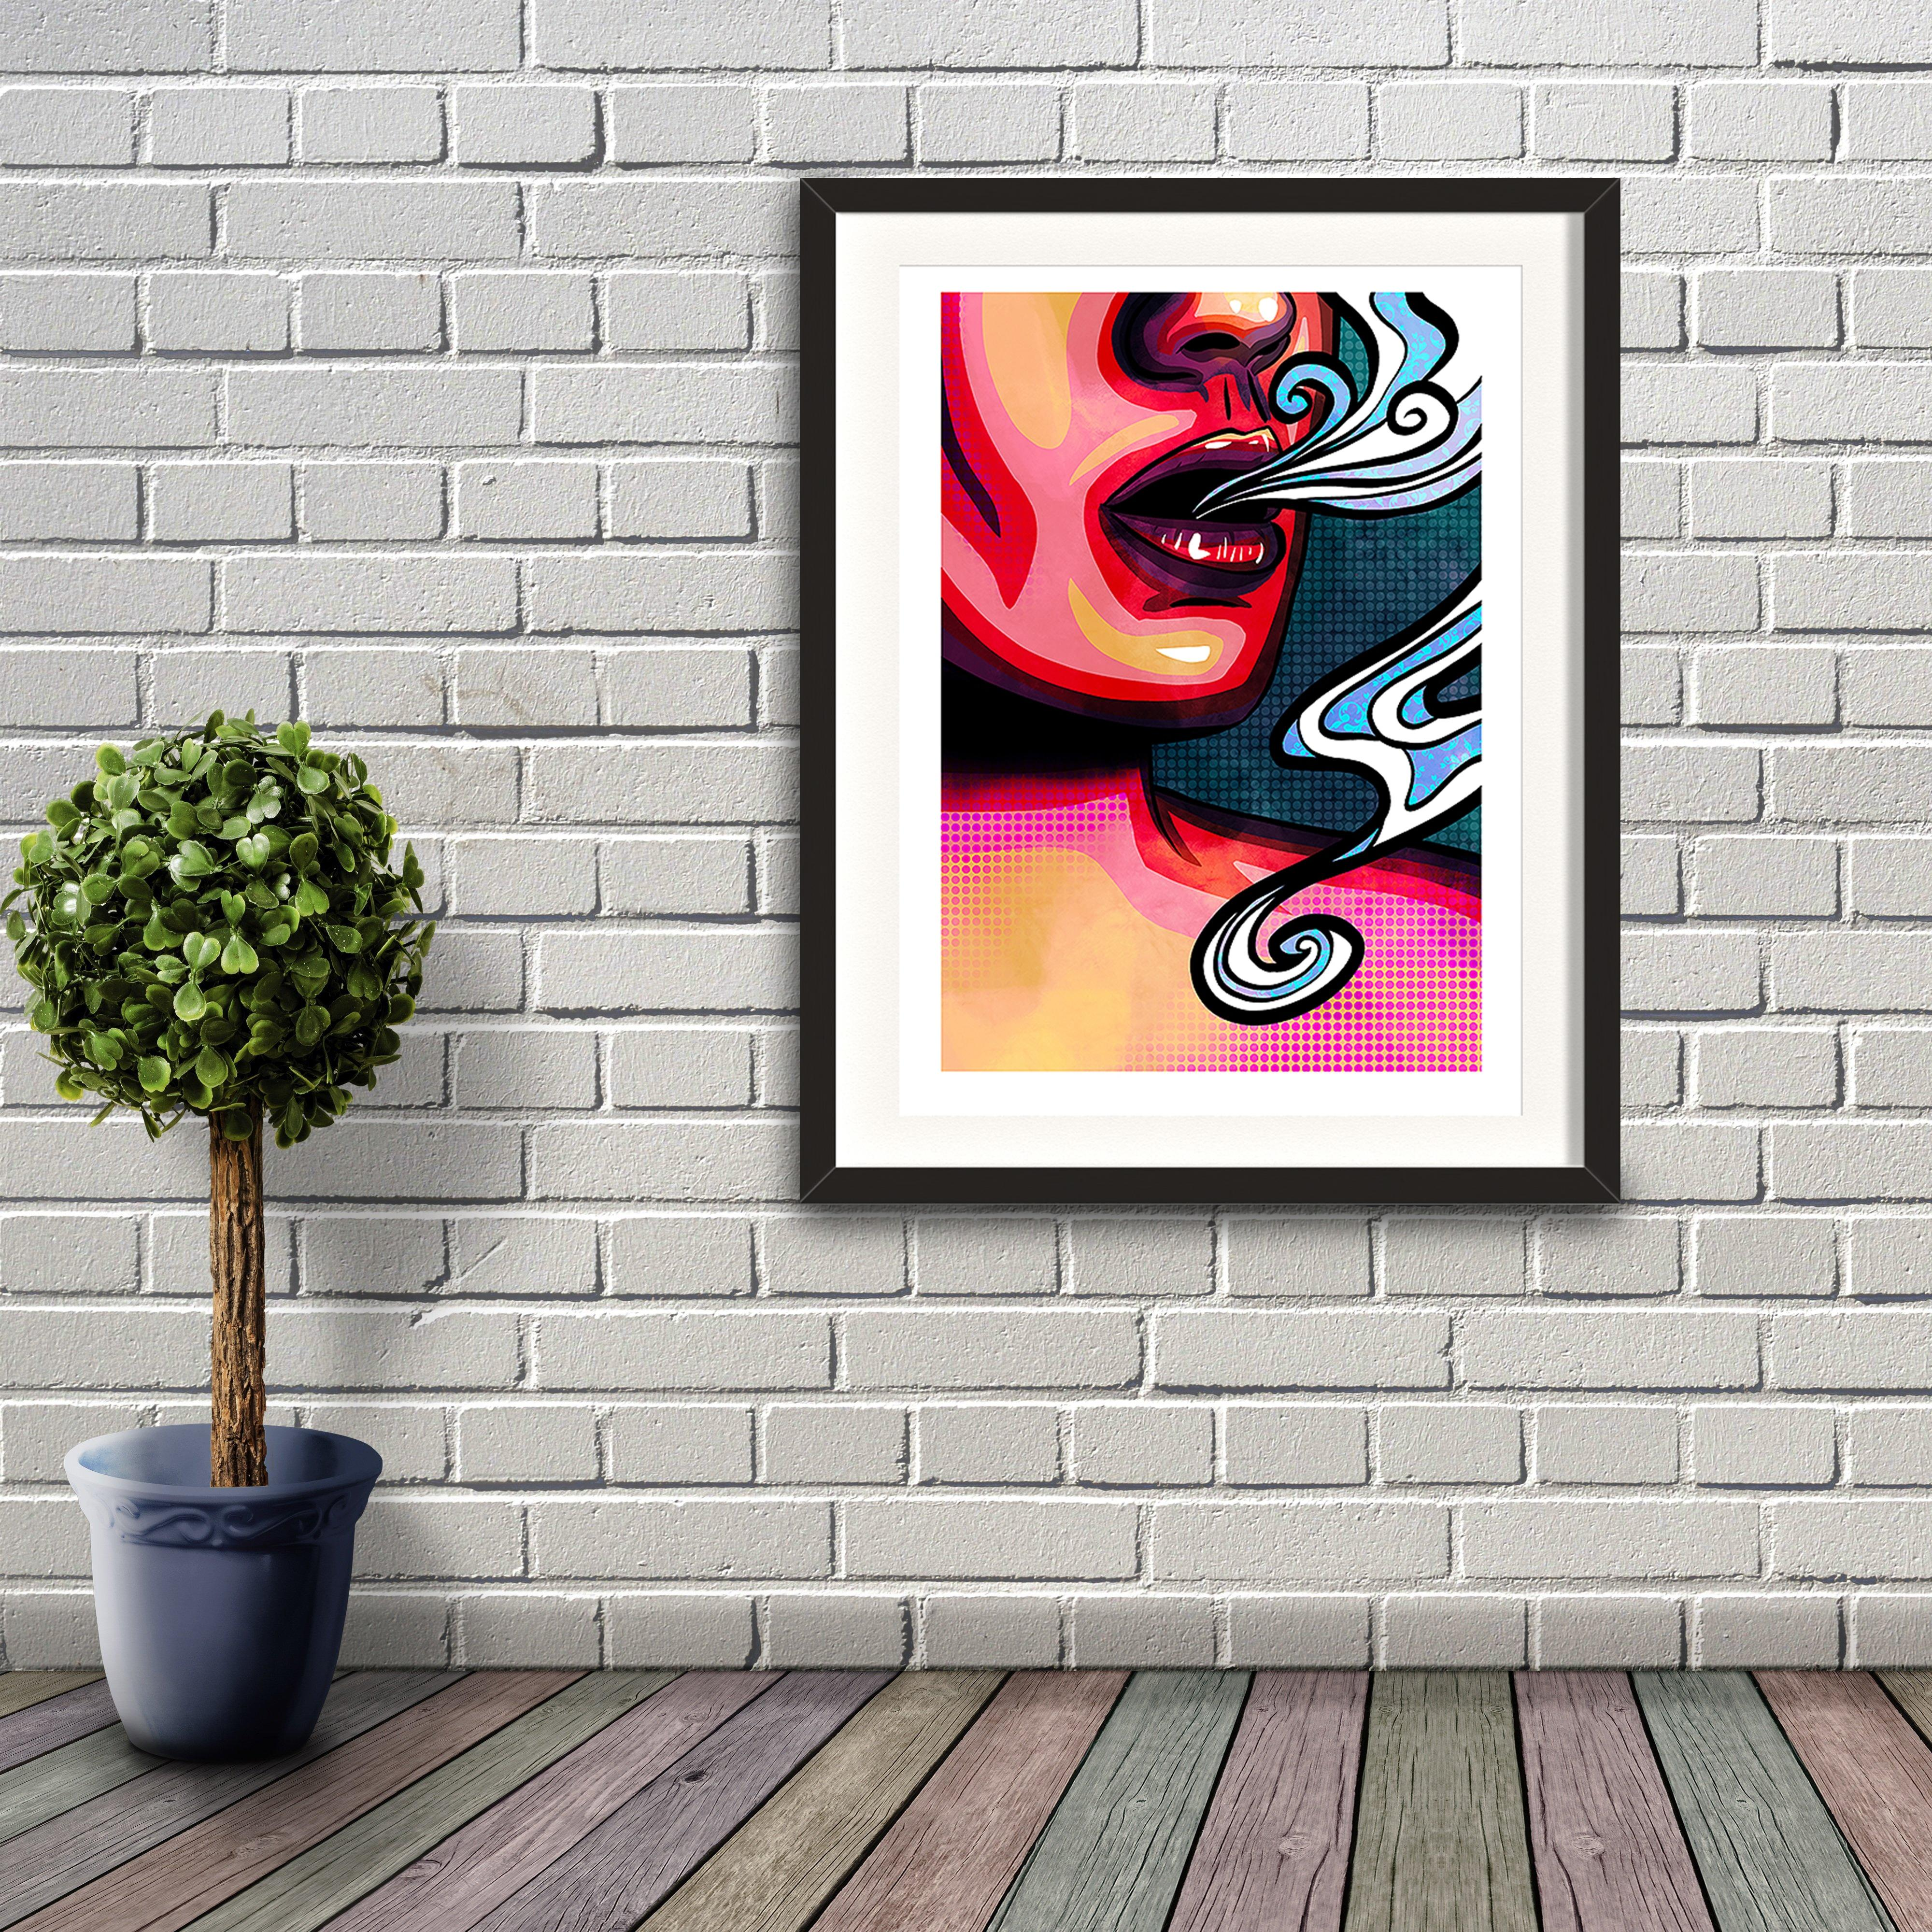 A pop art styled digital painting by Lily Bourne printed on eco fine art paper titled Emanate showing the mouth of a female exhaling breath. Artwork shown in a black frame hanging on a brick wall.